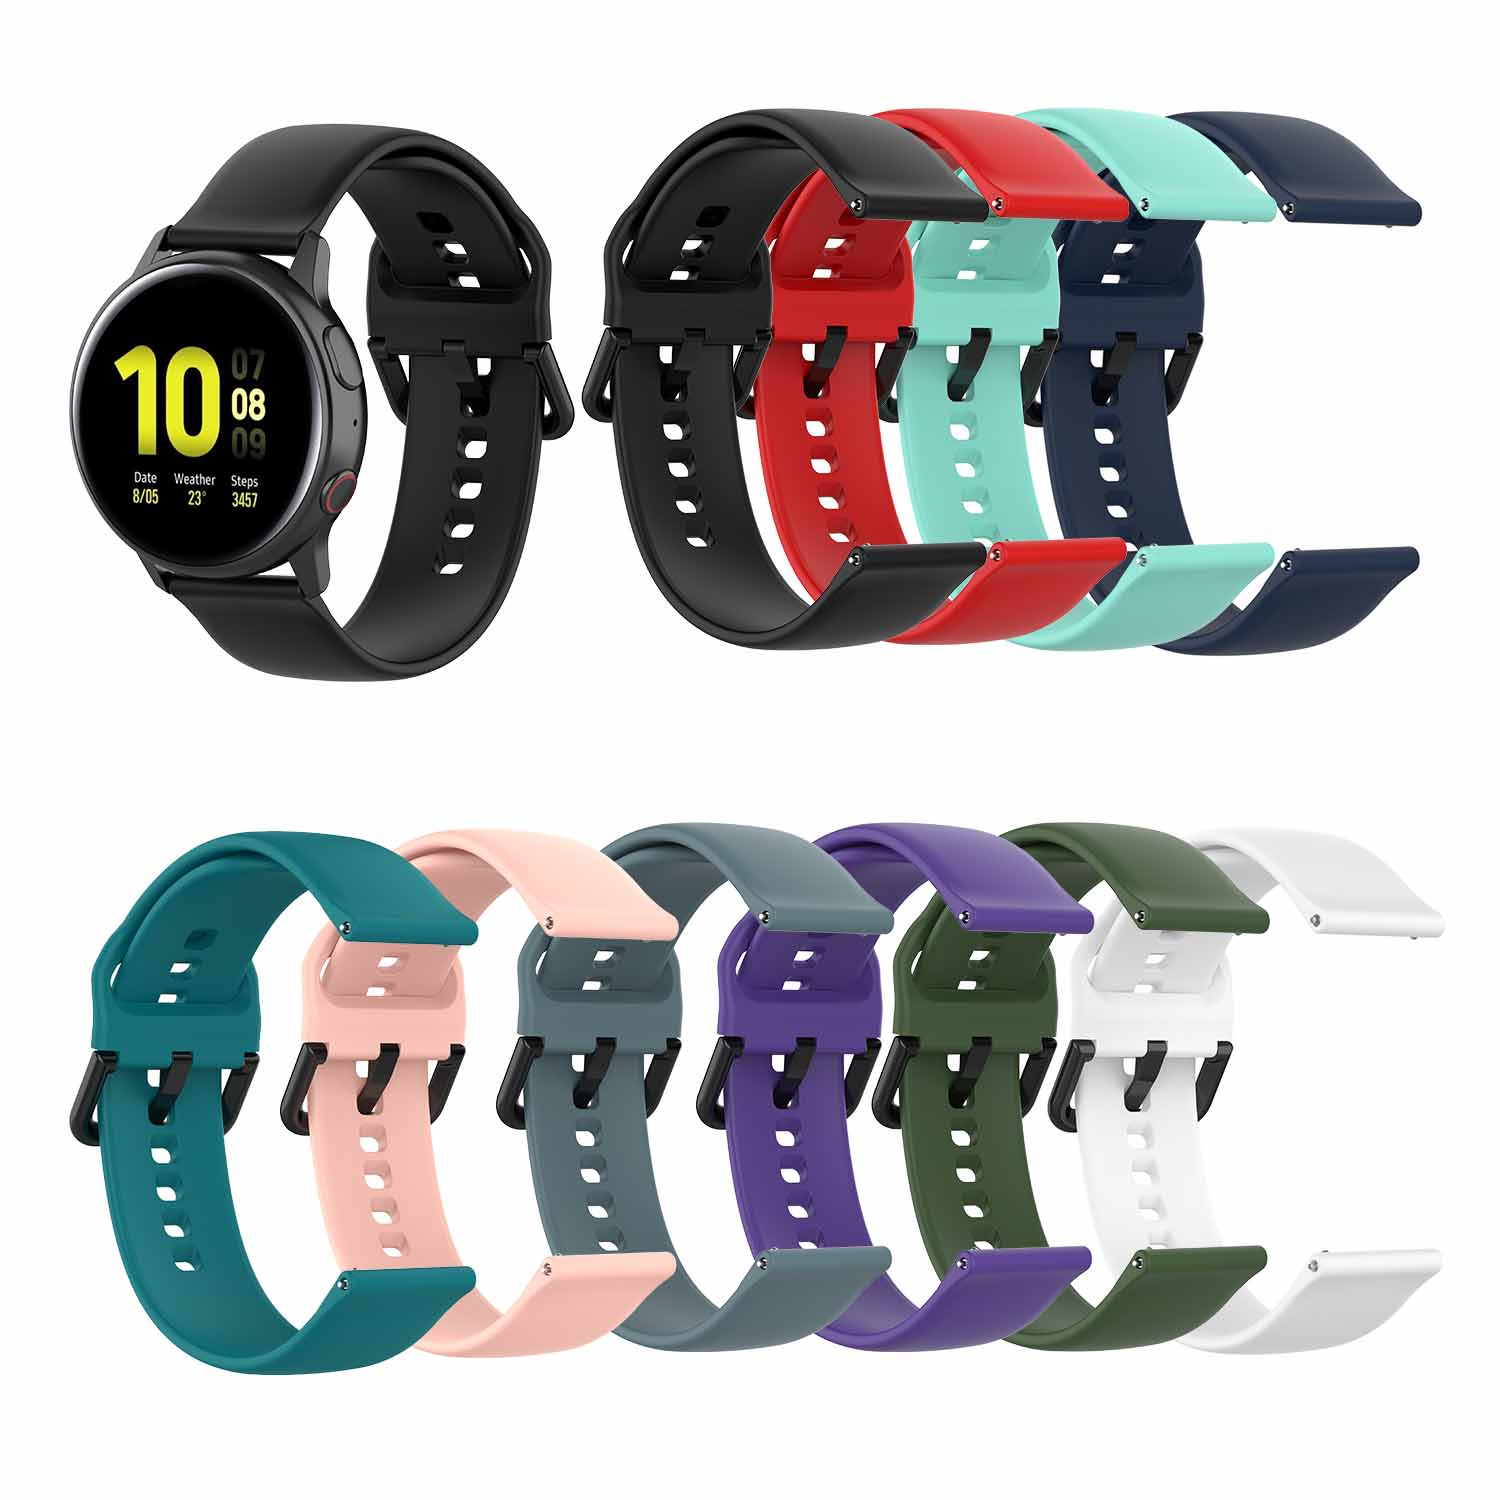 42mm Sport Band Strap Band For Samsung Galaxy Watch Active/active 2 Replacement Wristband Strap For Silicone Bracelet Watchband